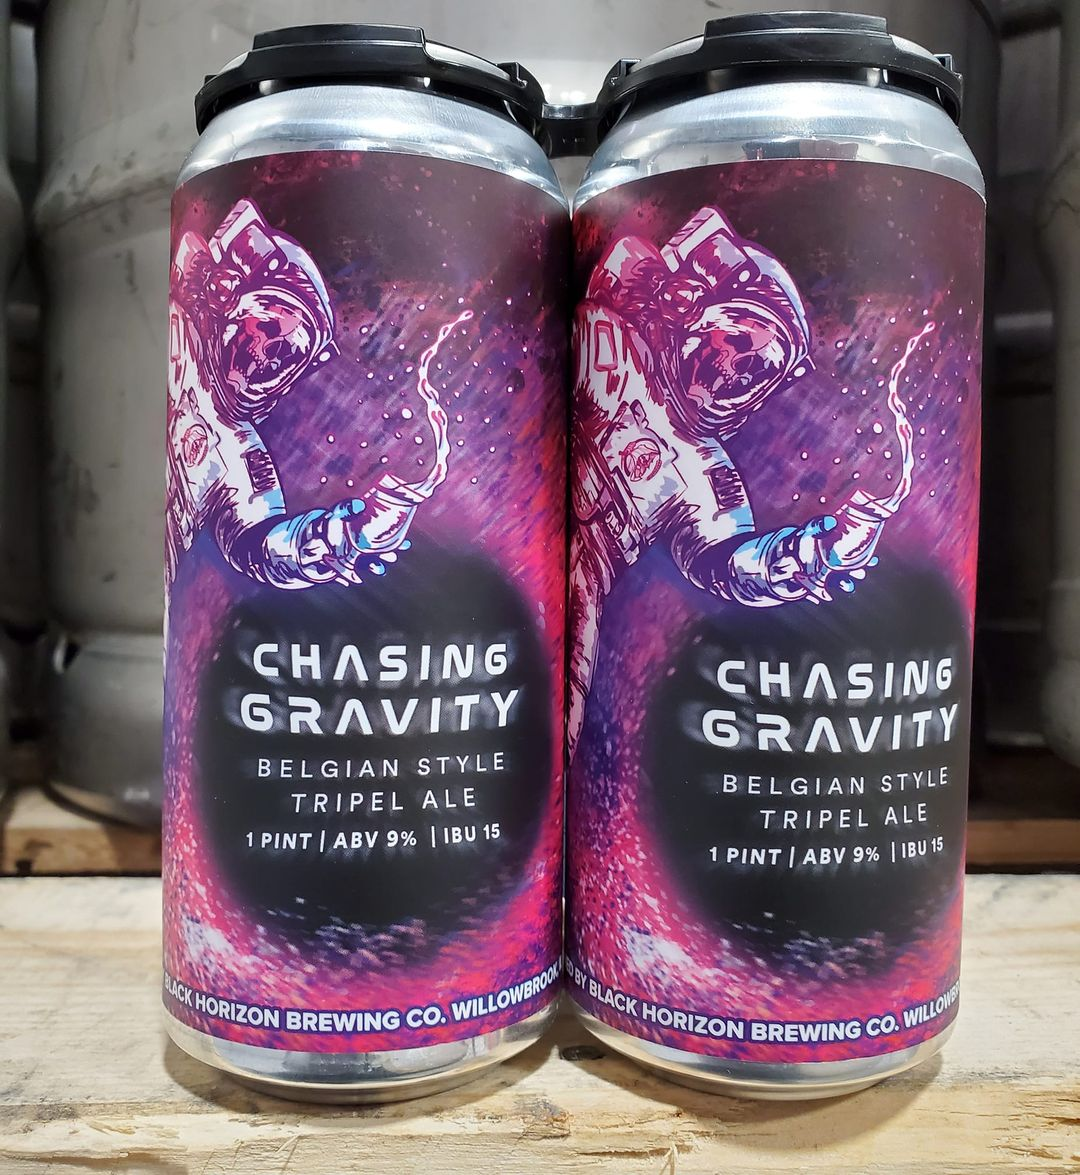 Glass of Chasing Gravity by Black Horizon Brewing Company